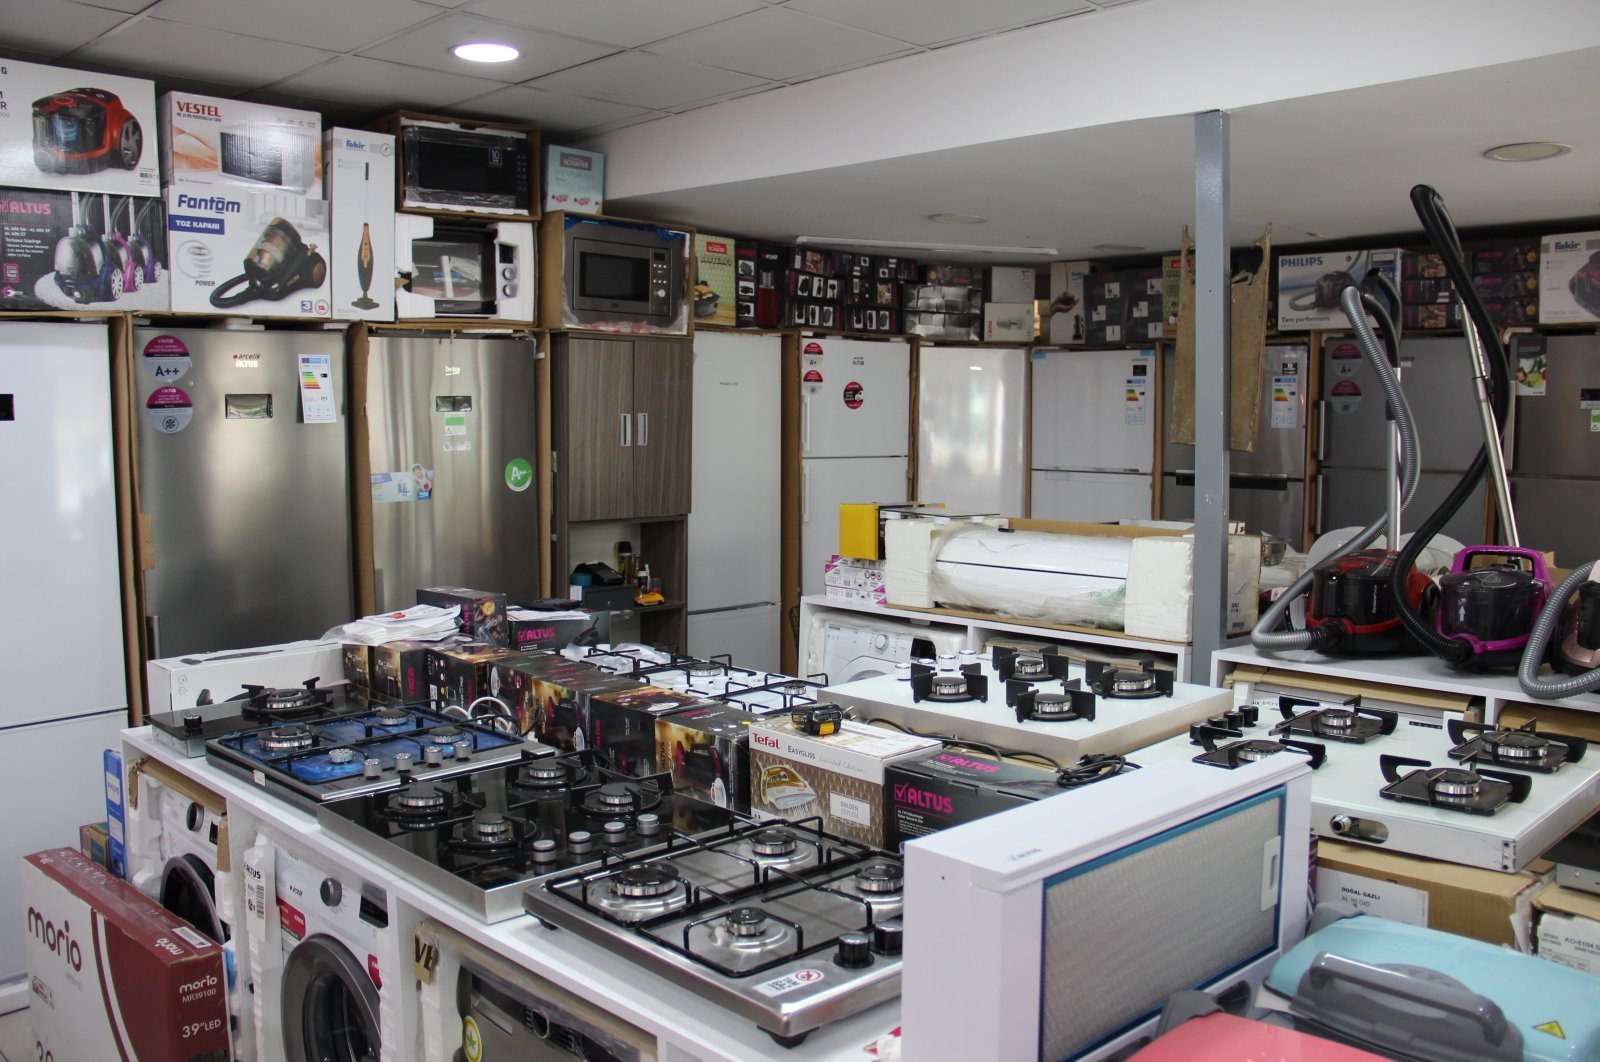 Home appliances are seen in a store during the coronavirus outbreak in Istanbul, Turkey, July 7, 2020. (IHA Photo)